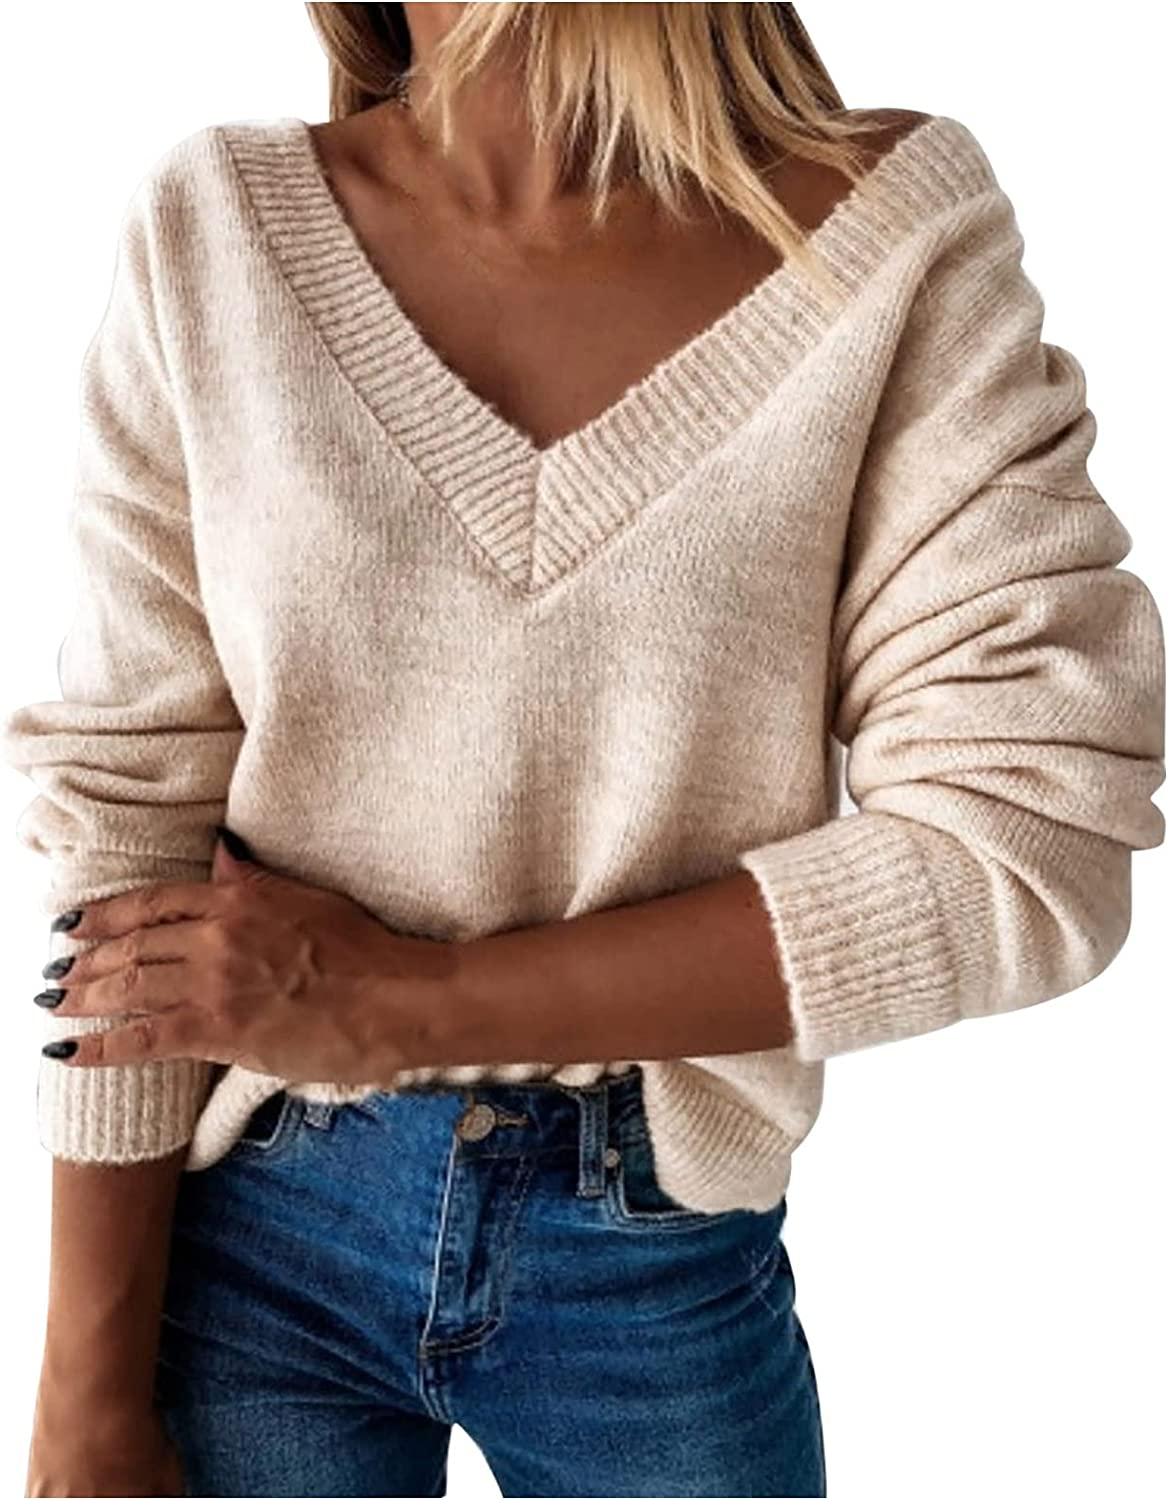 Fashion Sweaters for Women V Neck Long Sleeve Pullover Solid Color Knitted Blouse Autumn Winter Tops